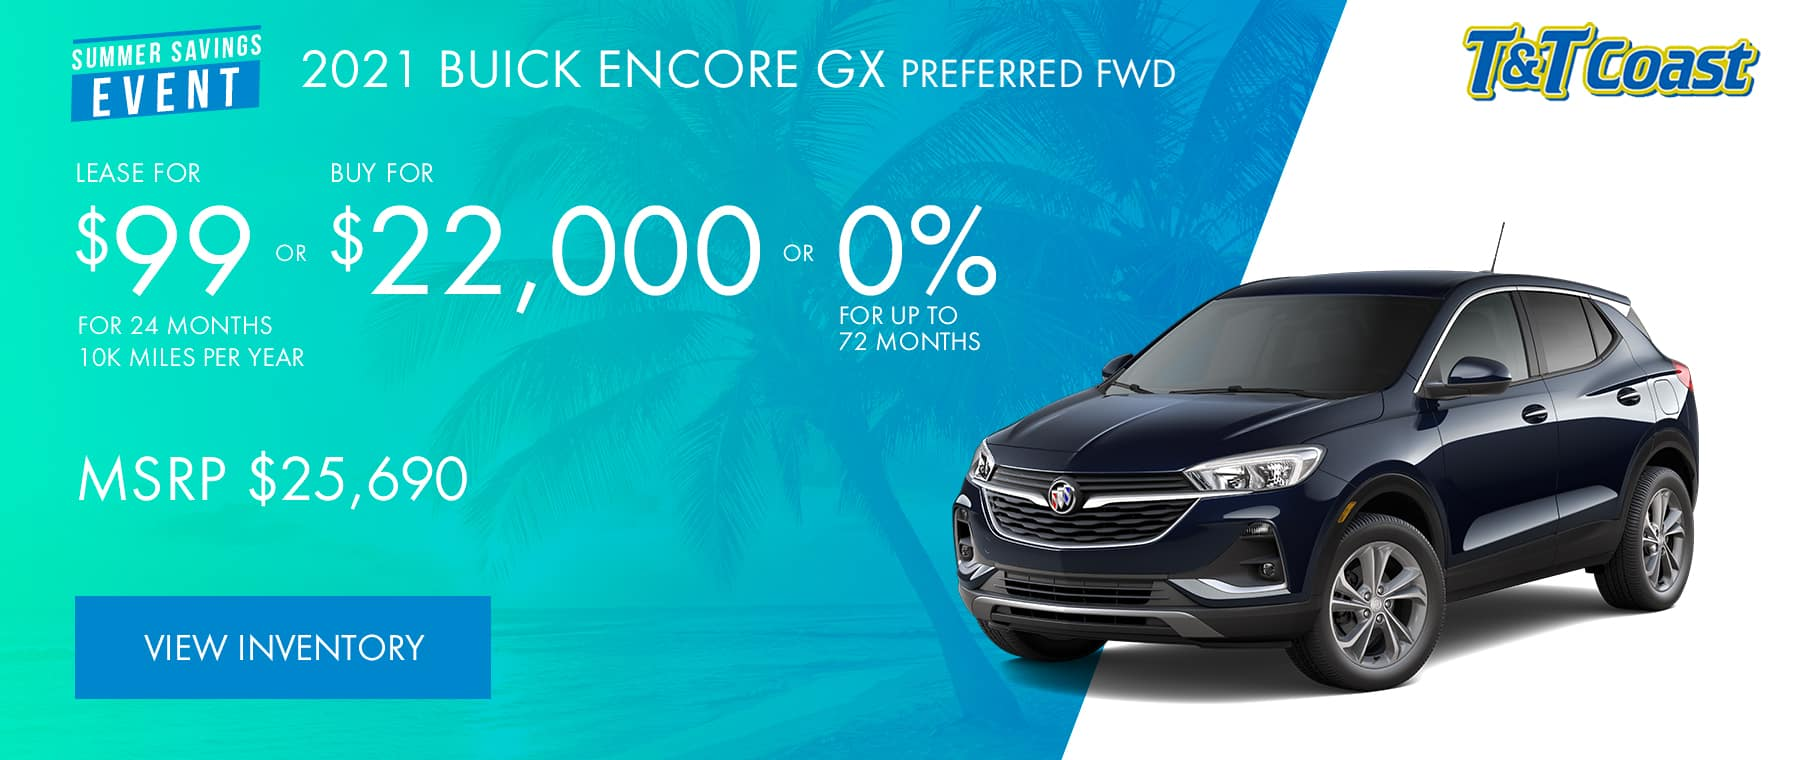 2021 BUICK ENCORE GX PREFERRED FWD Subtitle: MSRP $25,690 $99/MONTH LEASE!* For 24 Months /10K Miles/Year OR BUY FOR $22,000 OR 0% FOR UP TO 72 months